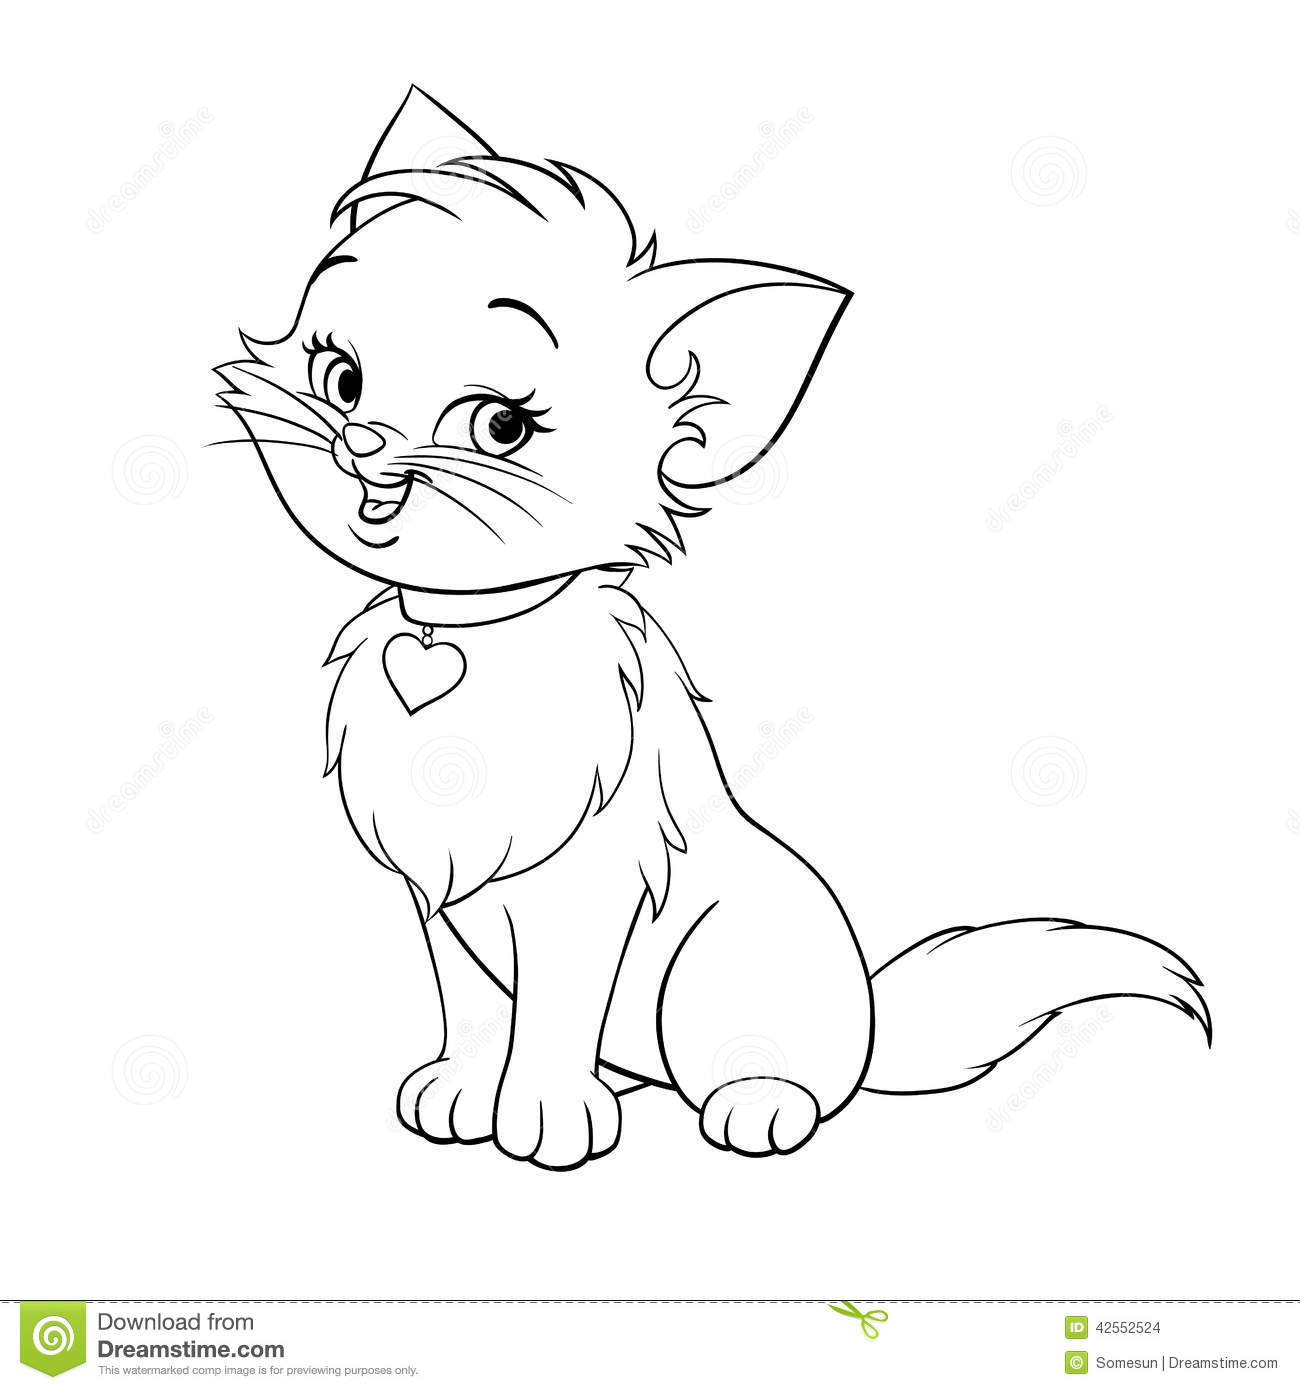 Xterm Line Drawing Characters : Fluffy cat coloring pages